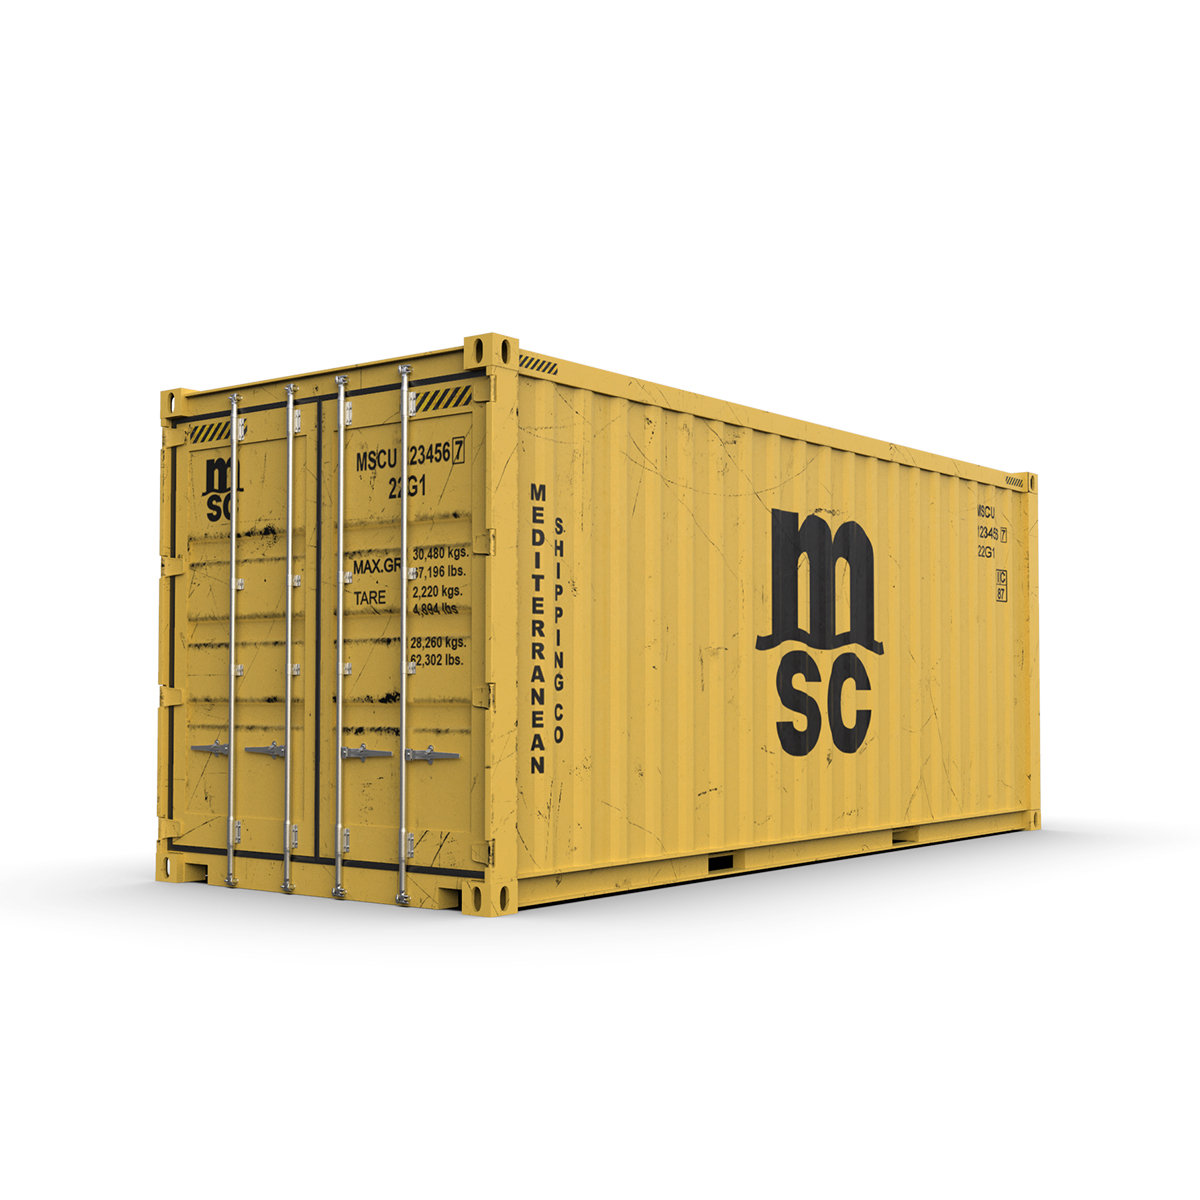 20 feet msc standardowy kontener transportowy 3d model 3ds max fbx ma mb obj 278382